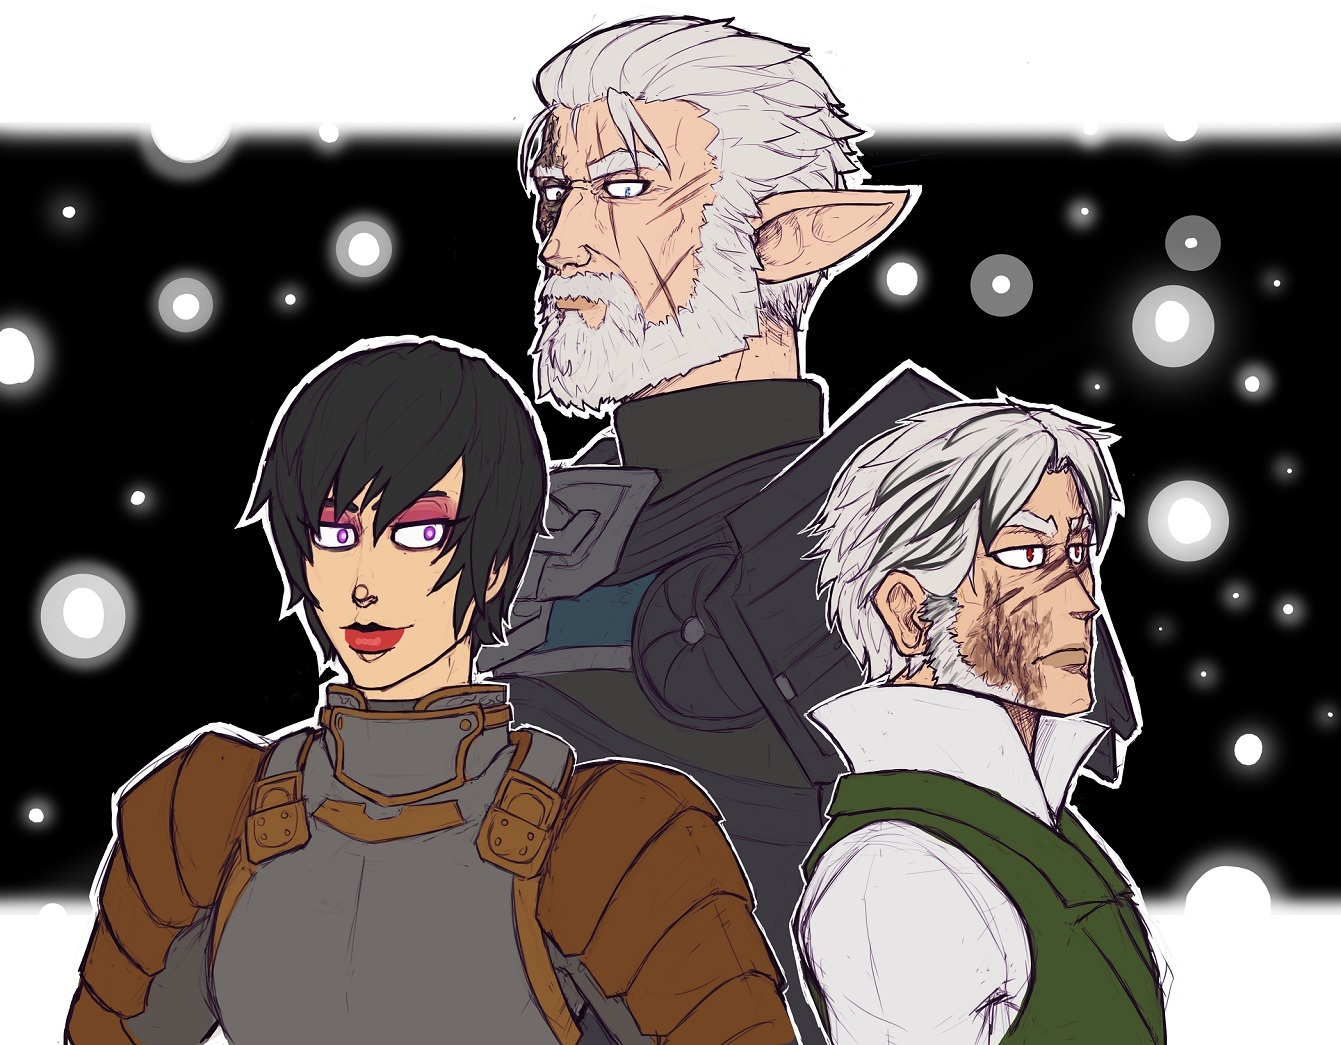 The Selmers